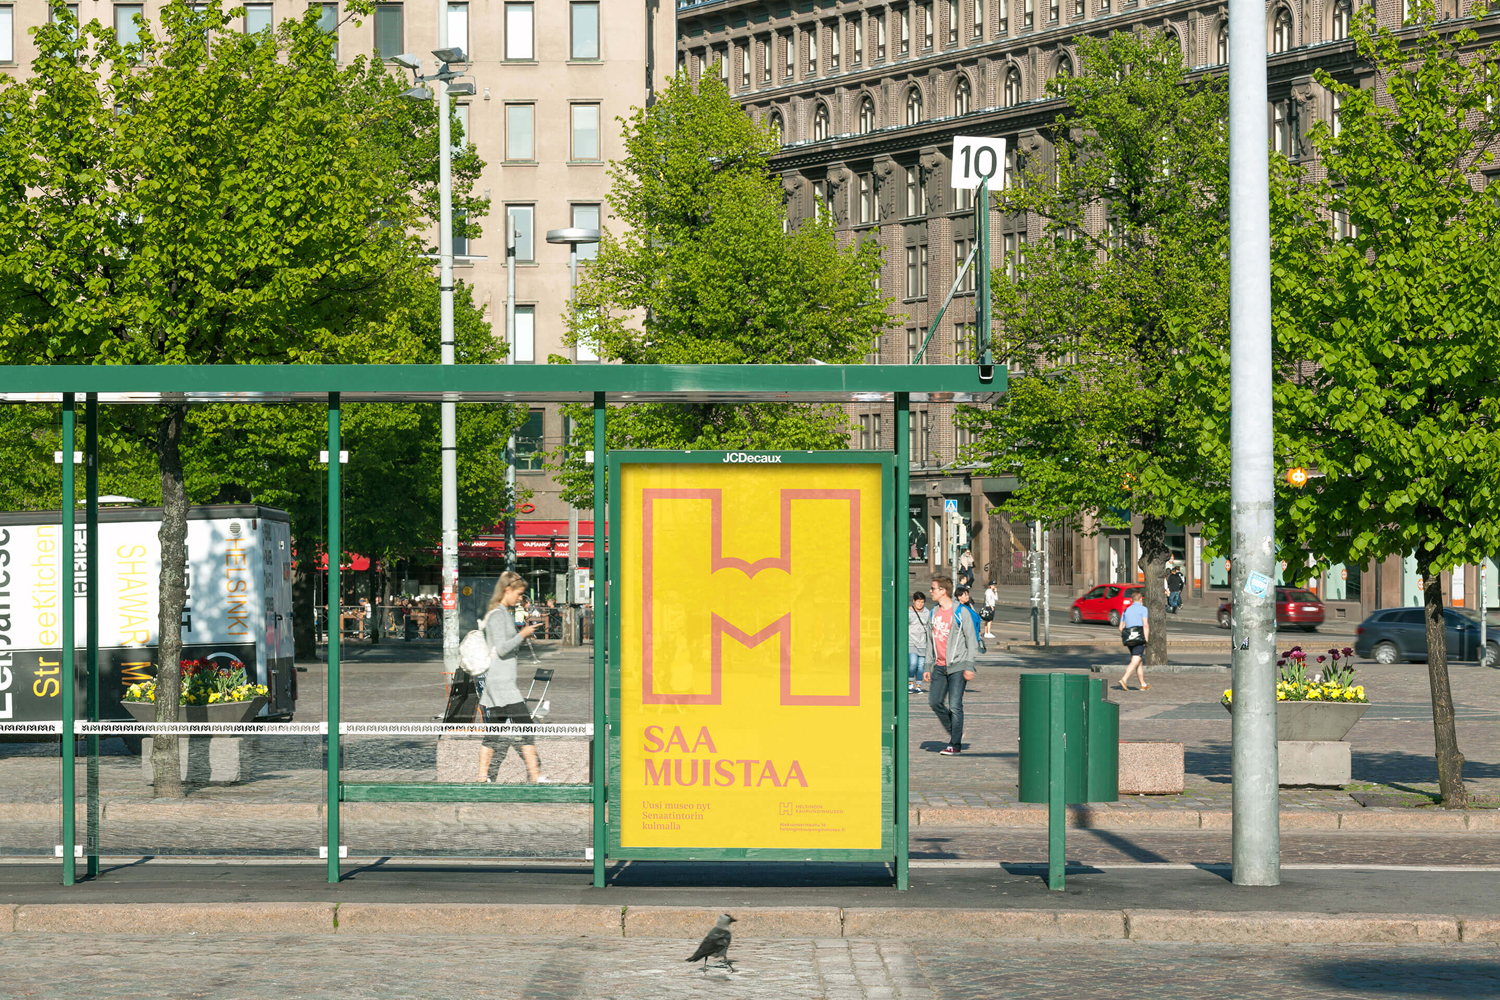 Brand identity and print campaign by Finnish graphic design studio Werklig for Helsinki City Museum